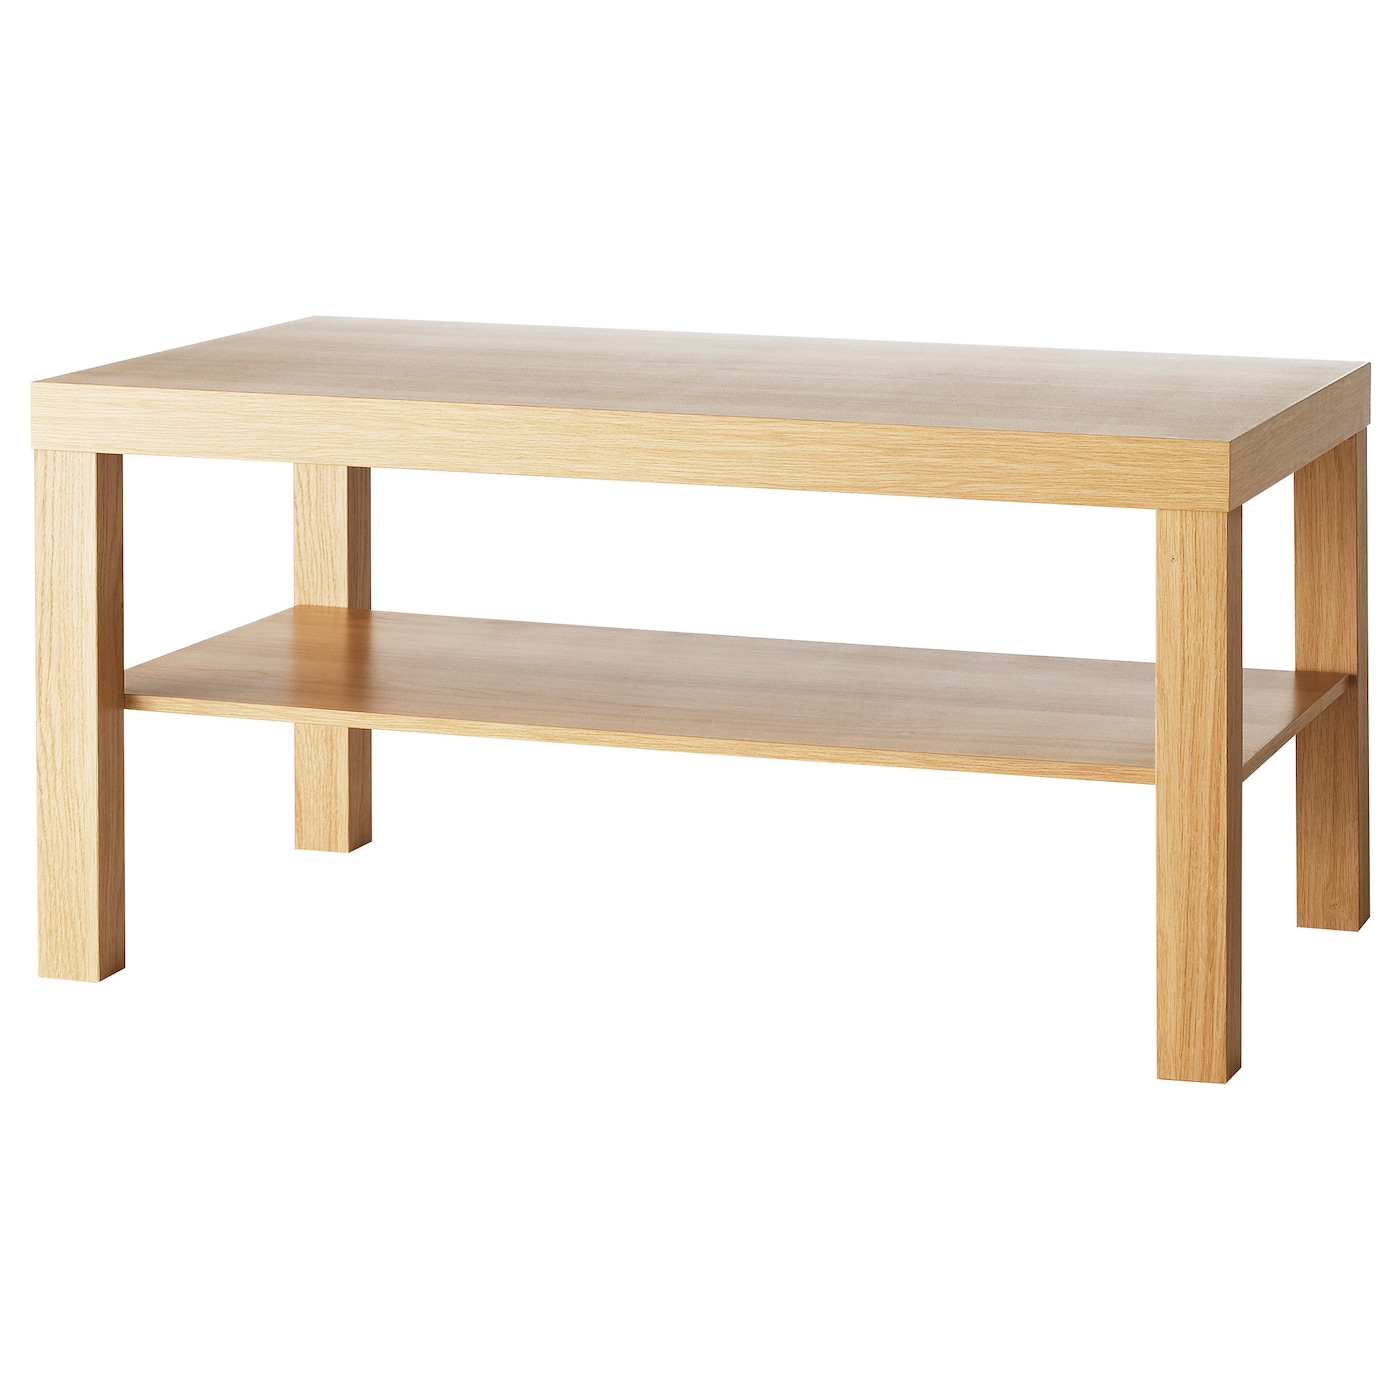 LACK Coffee Table Oak Effect 90 X 55 Cm